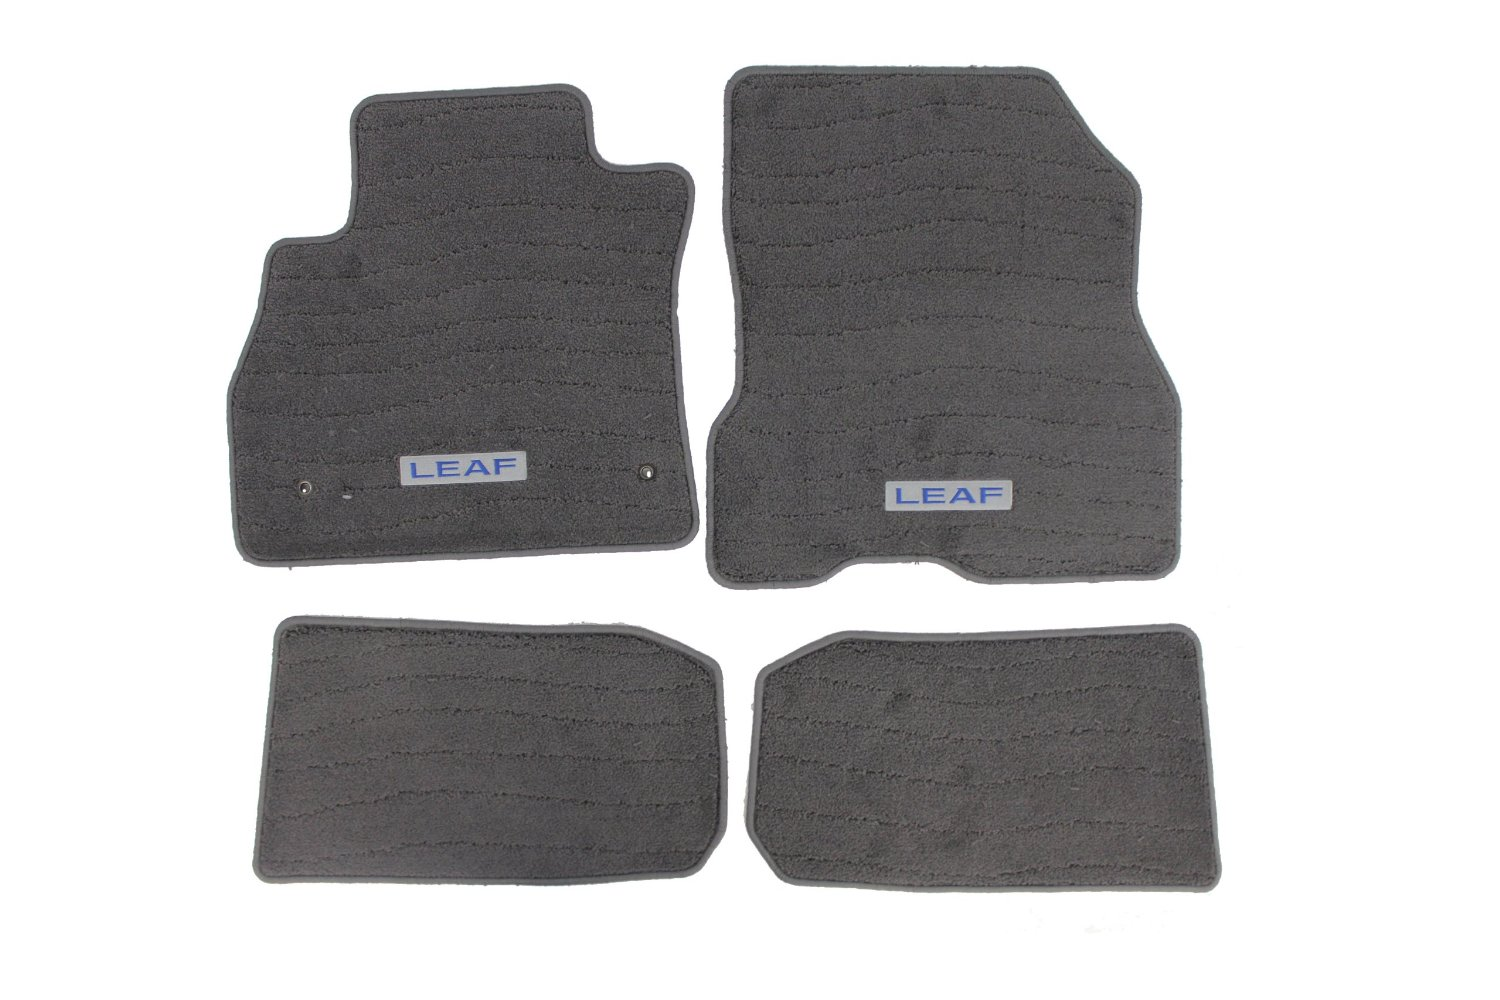 Genuine Nissan Floor Mats  20112012 Leaf  Nissan Race Shop